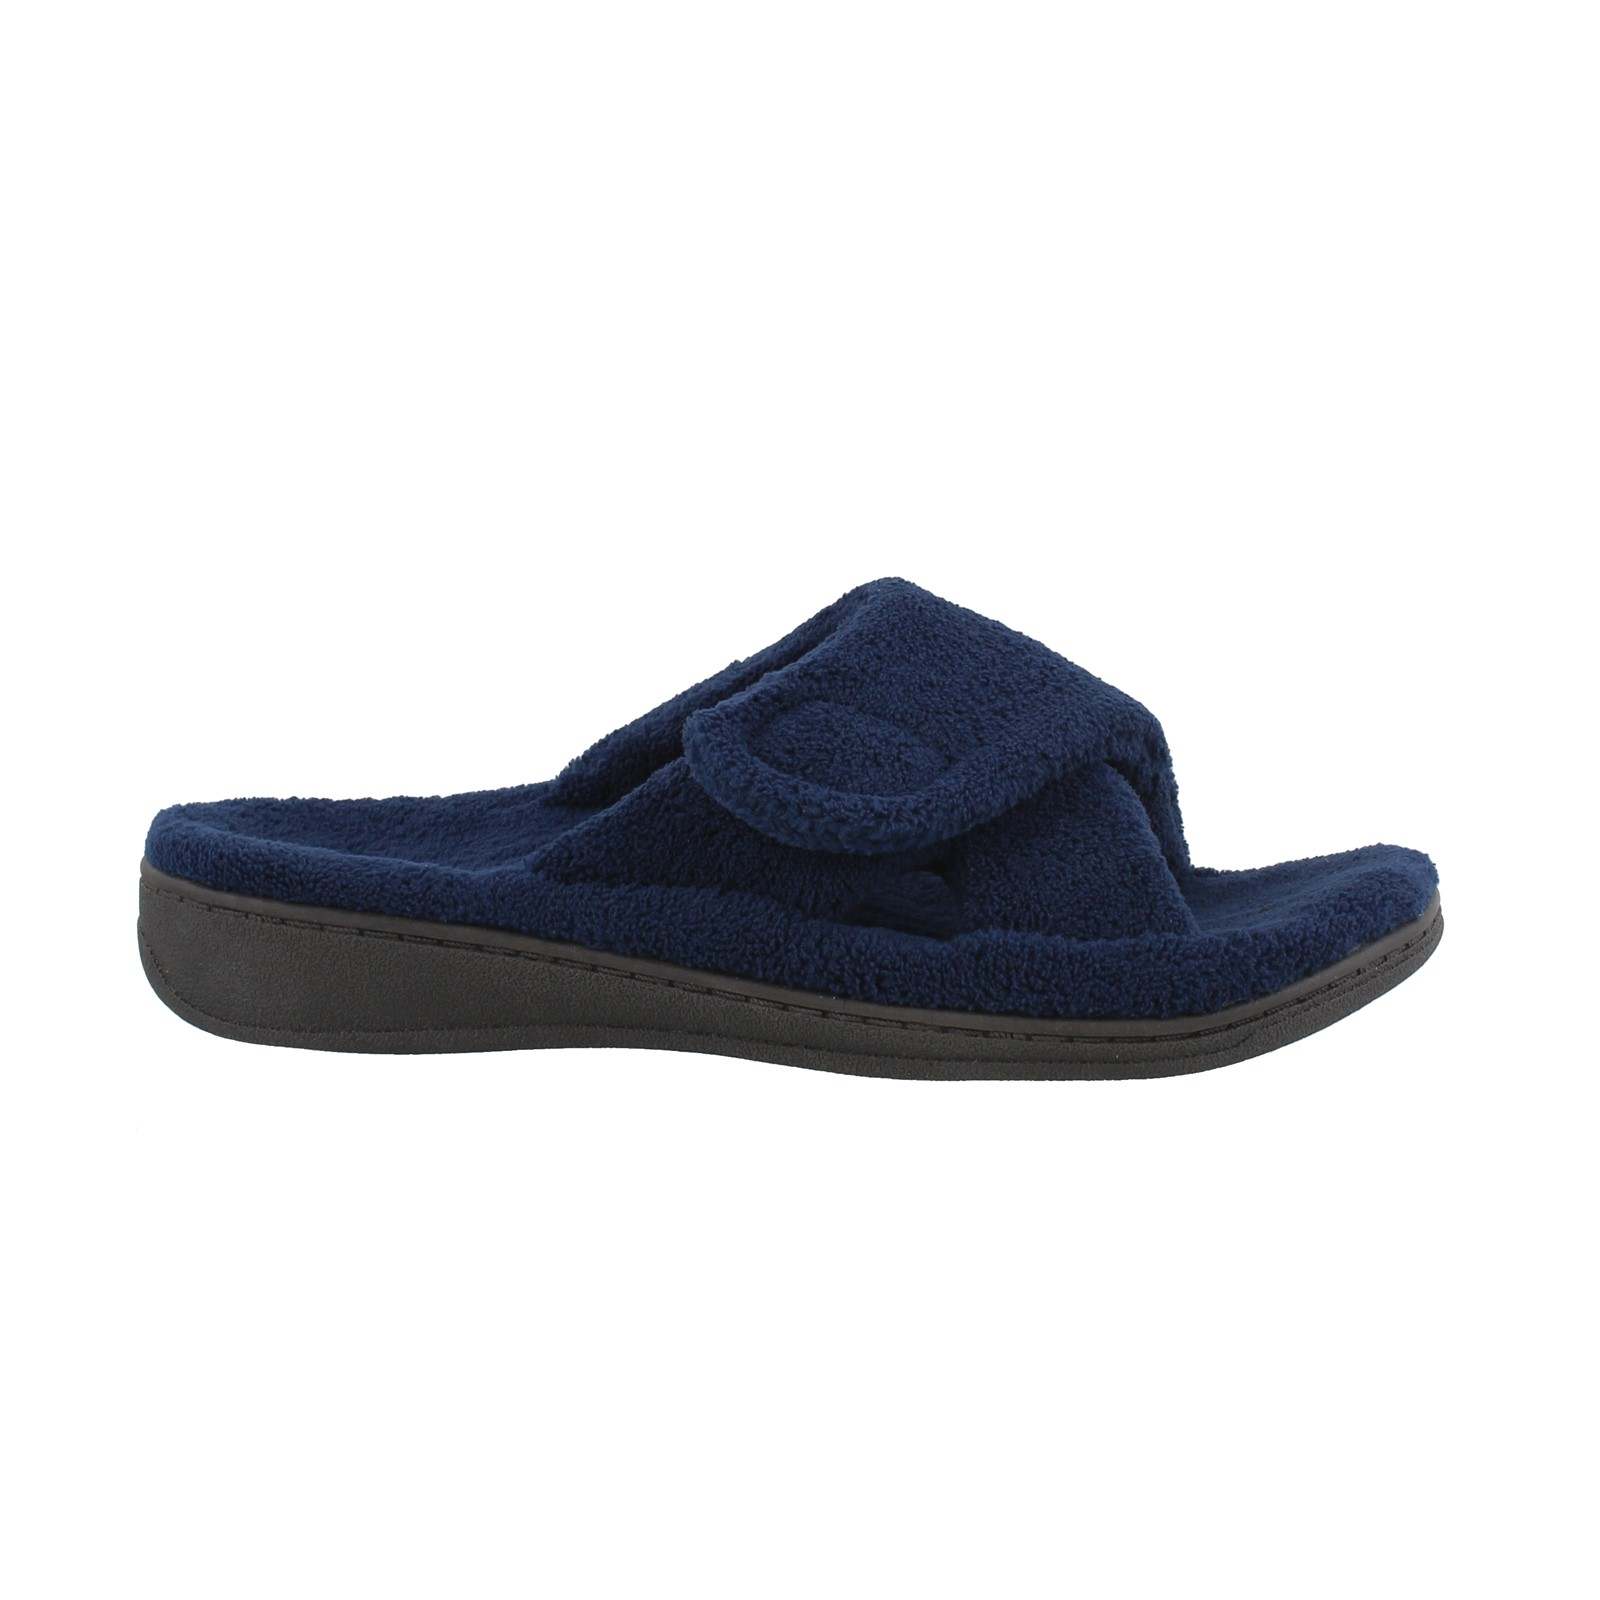 Women's Vionic, Relax Slipper